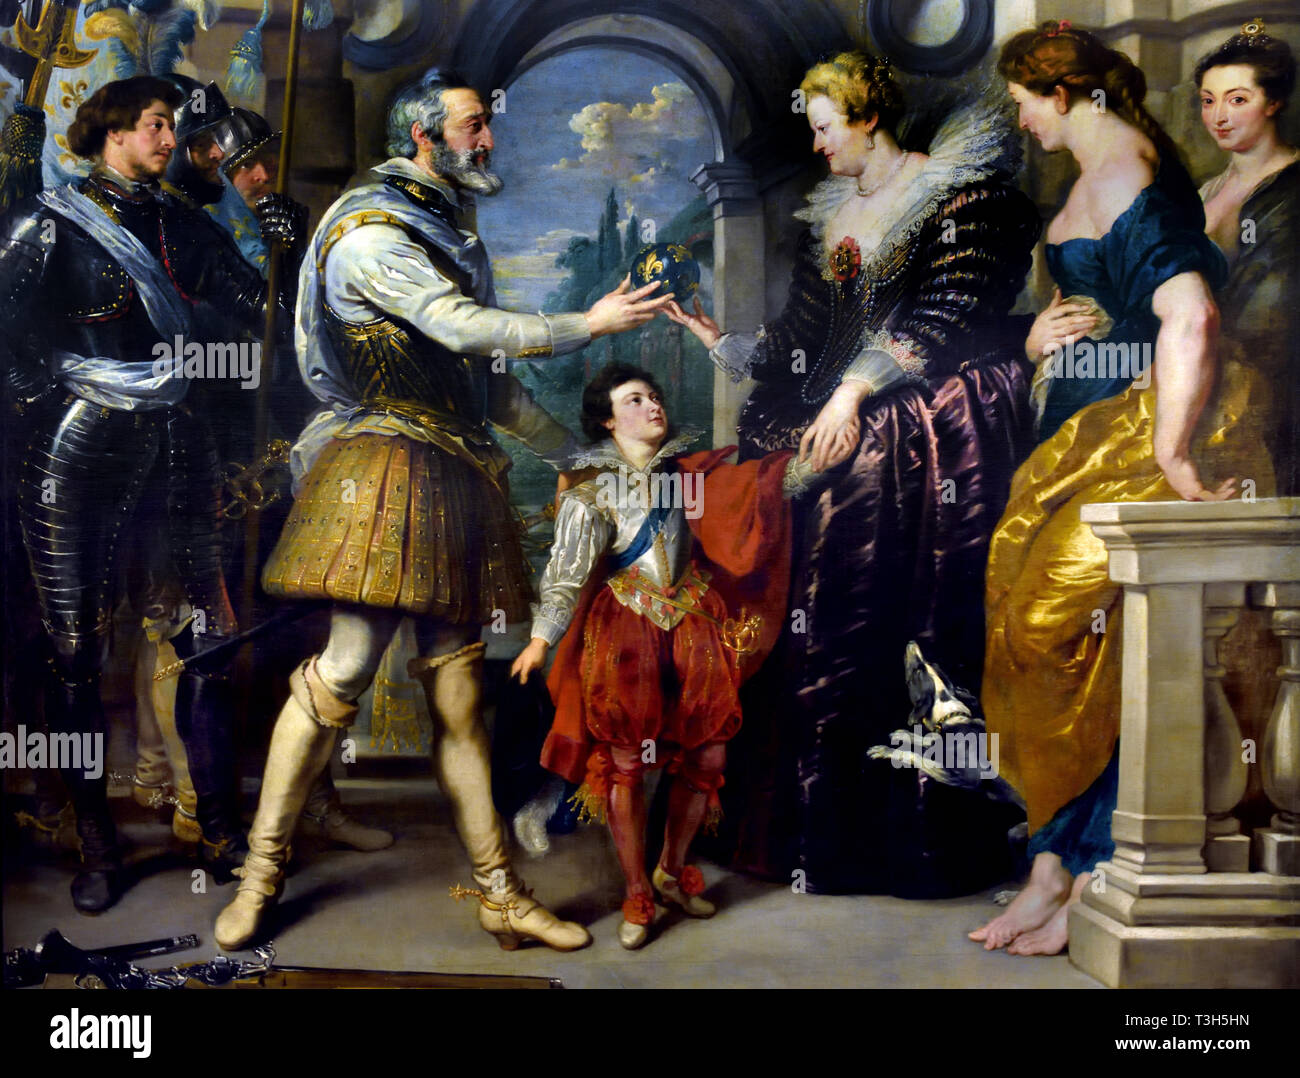 The Consignment of the Regency - The Marie de' Medici Cycle 1622-1624  by Peter Paul Rubens commissioned by Queen Marie de' Medici, widow of King Henry IV of France, for the Luxembourg Palace in Paris, - Stock Image